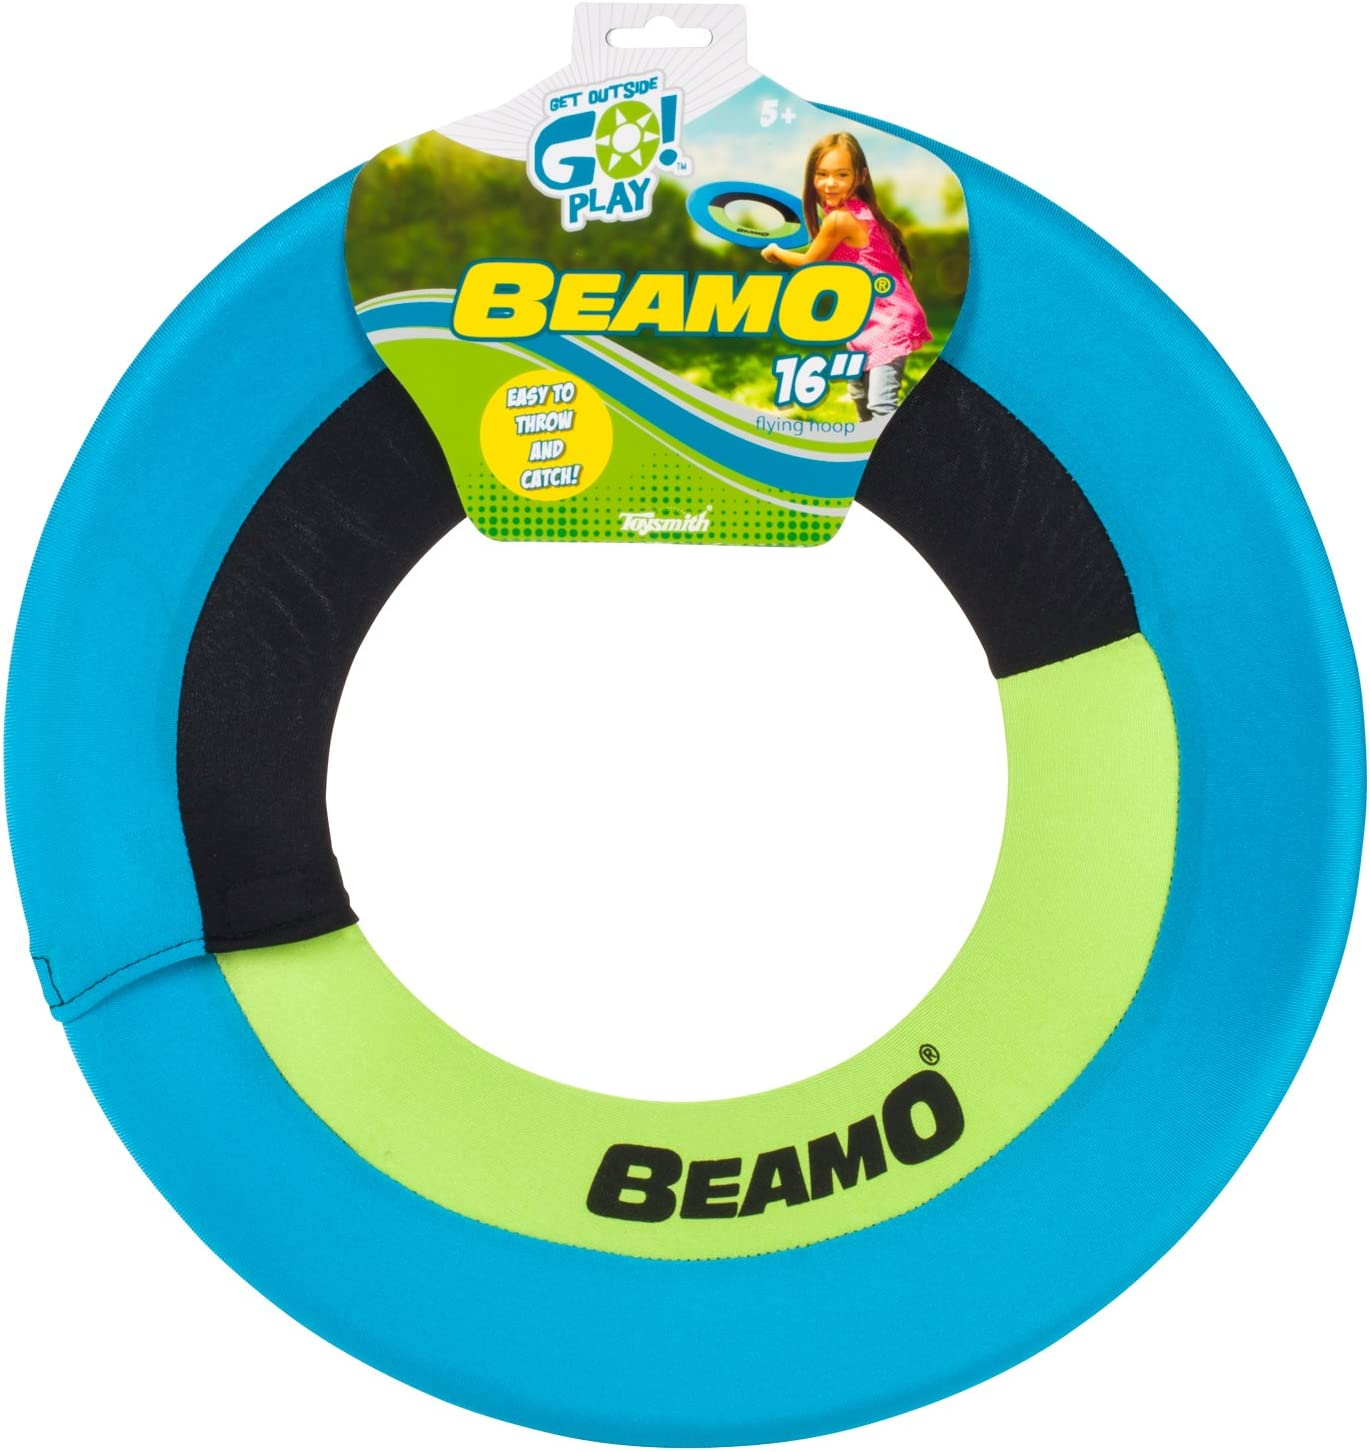 Amazon.com: Toysmith Get Outside GO! Mini Beamo Flying Hoop (16-Inch), Colors may vary : Toys & Games